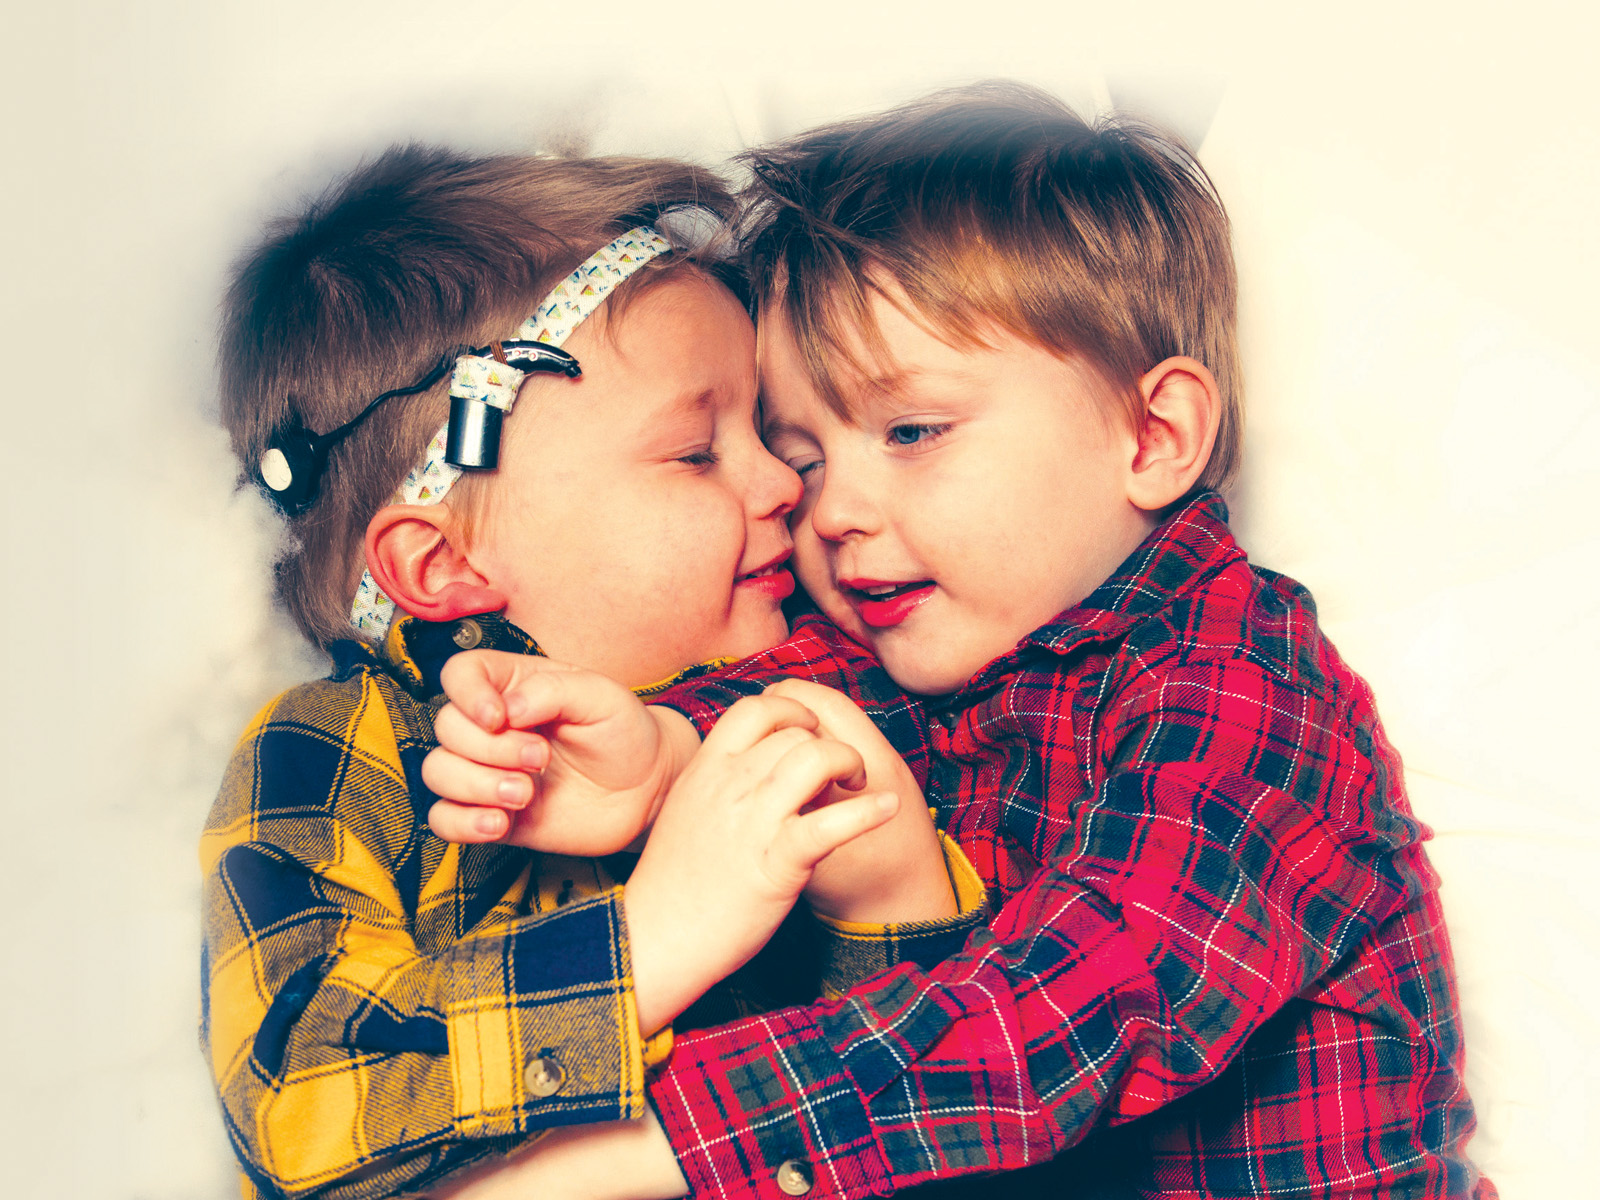 Two young brothers hugging each other